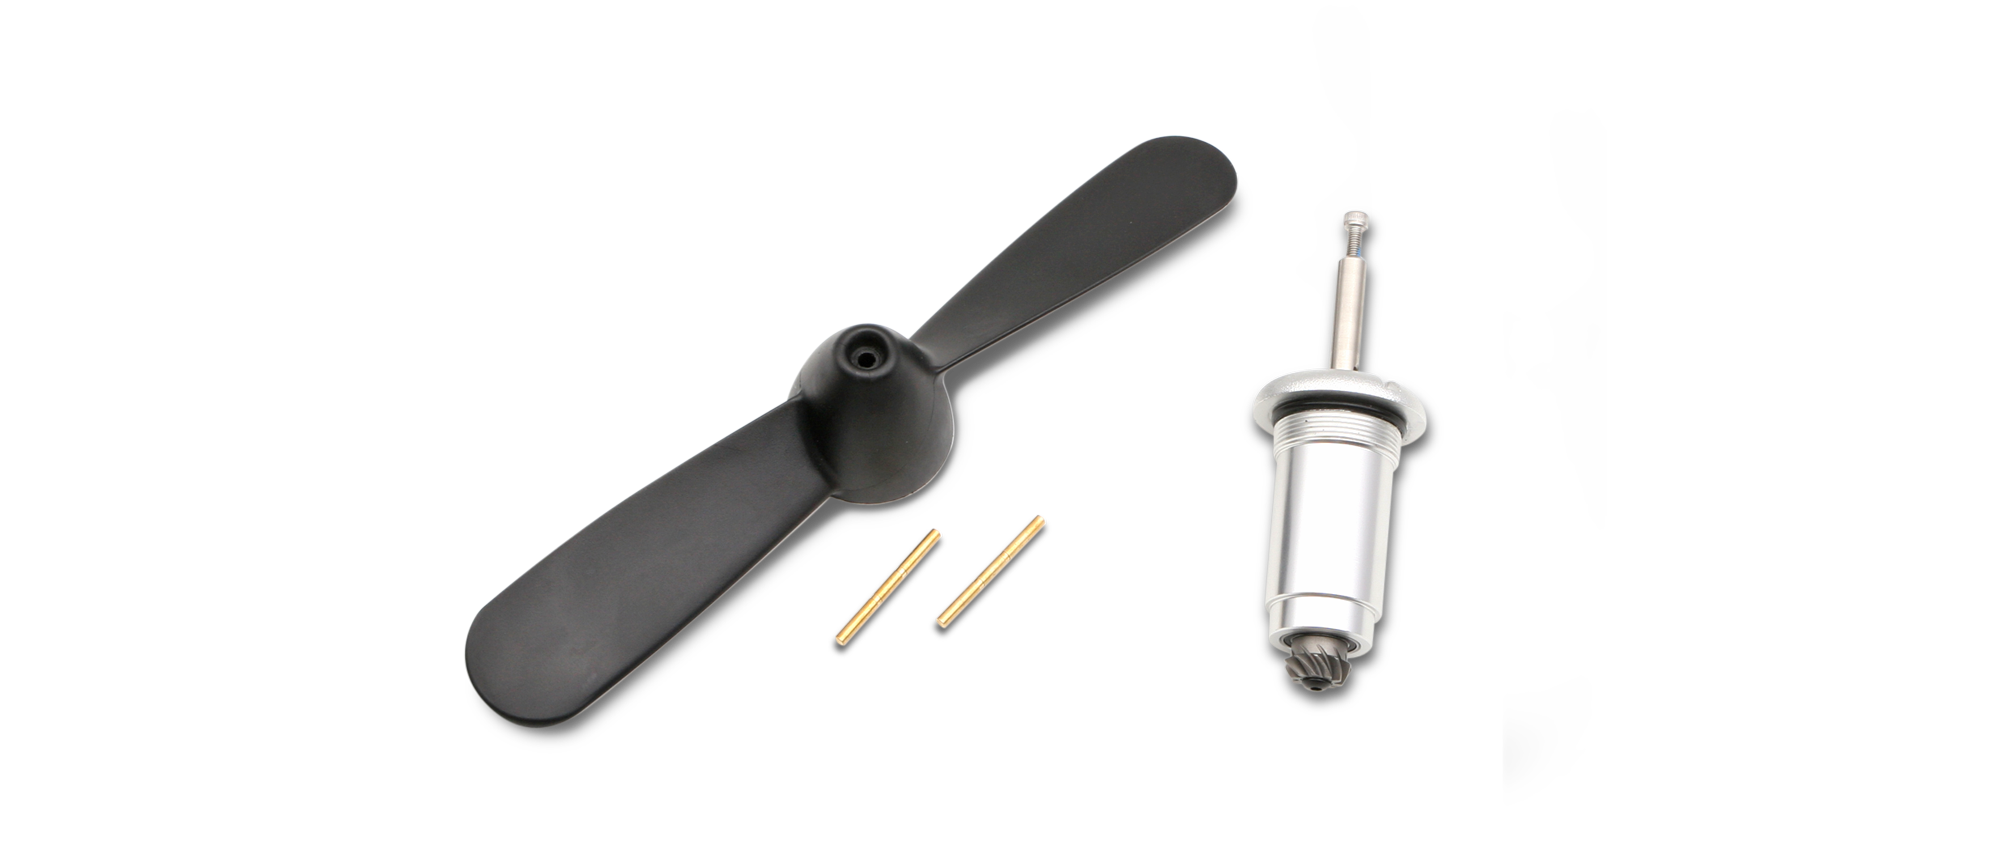 Propel Easy Cruz Propeller Upgrade Kit